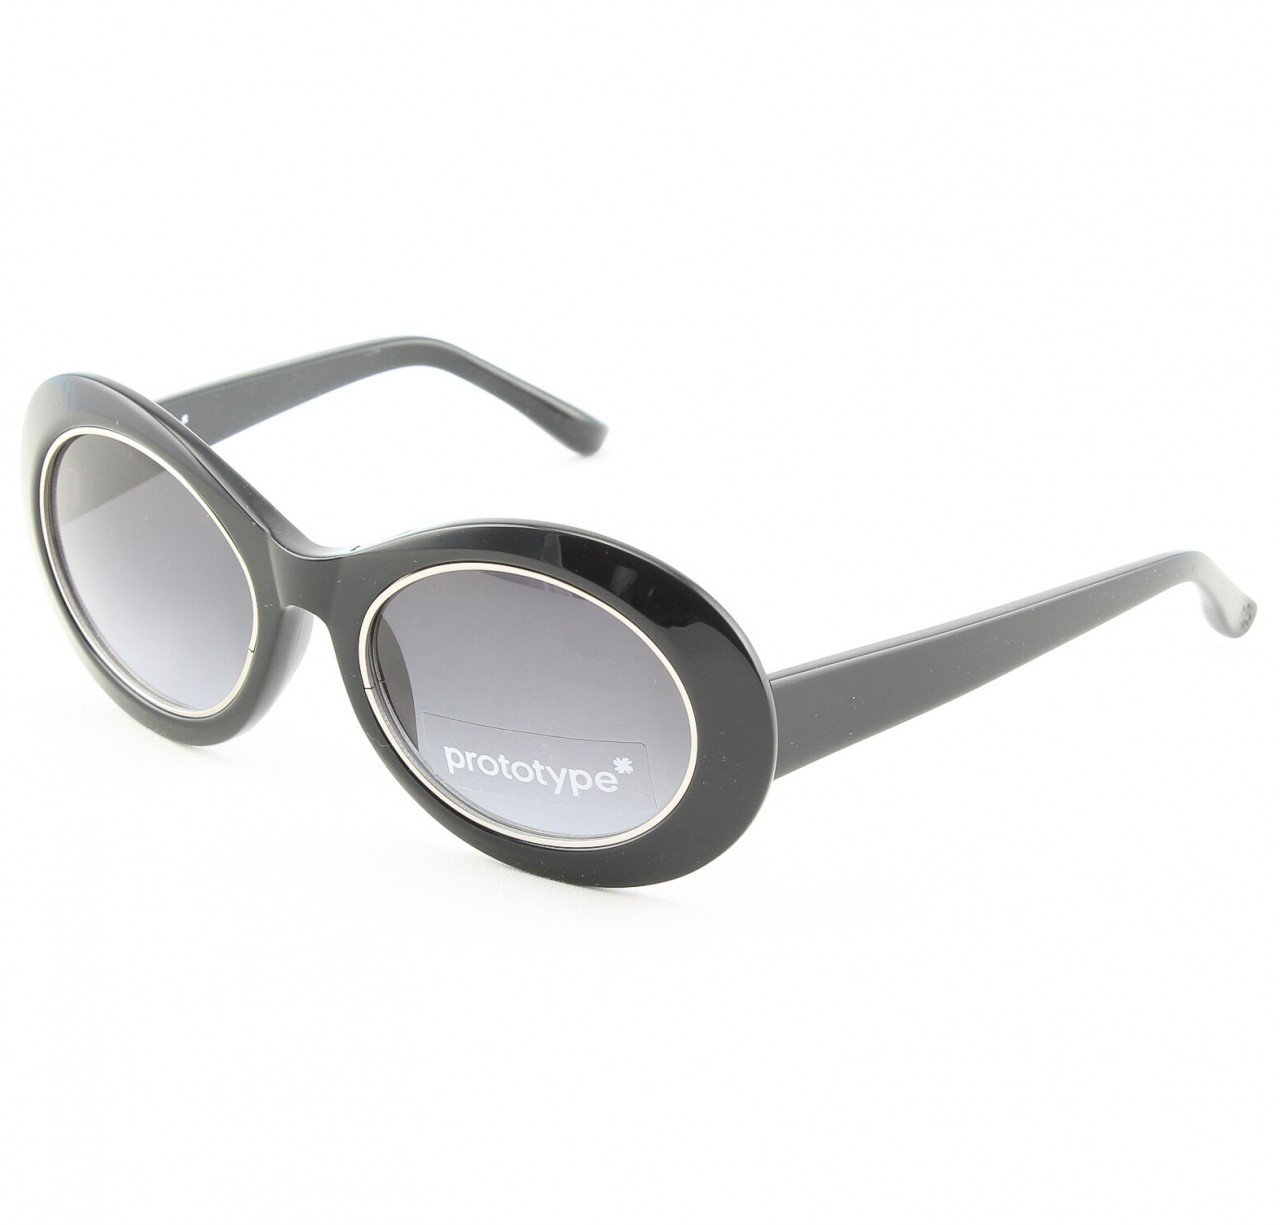 Prototype by Yohji Yamamoto Hornet Sunglasses Col. 01 Black Silver with Grey Gradient Lenses